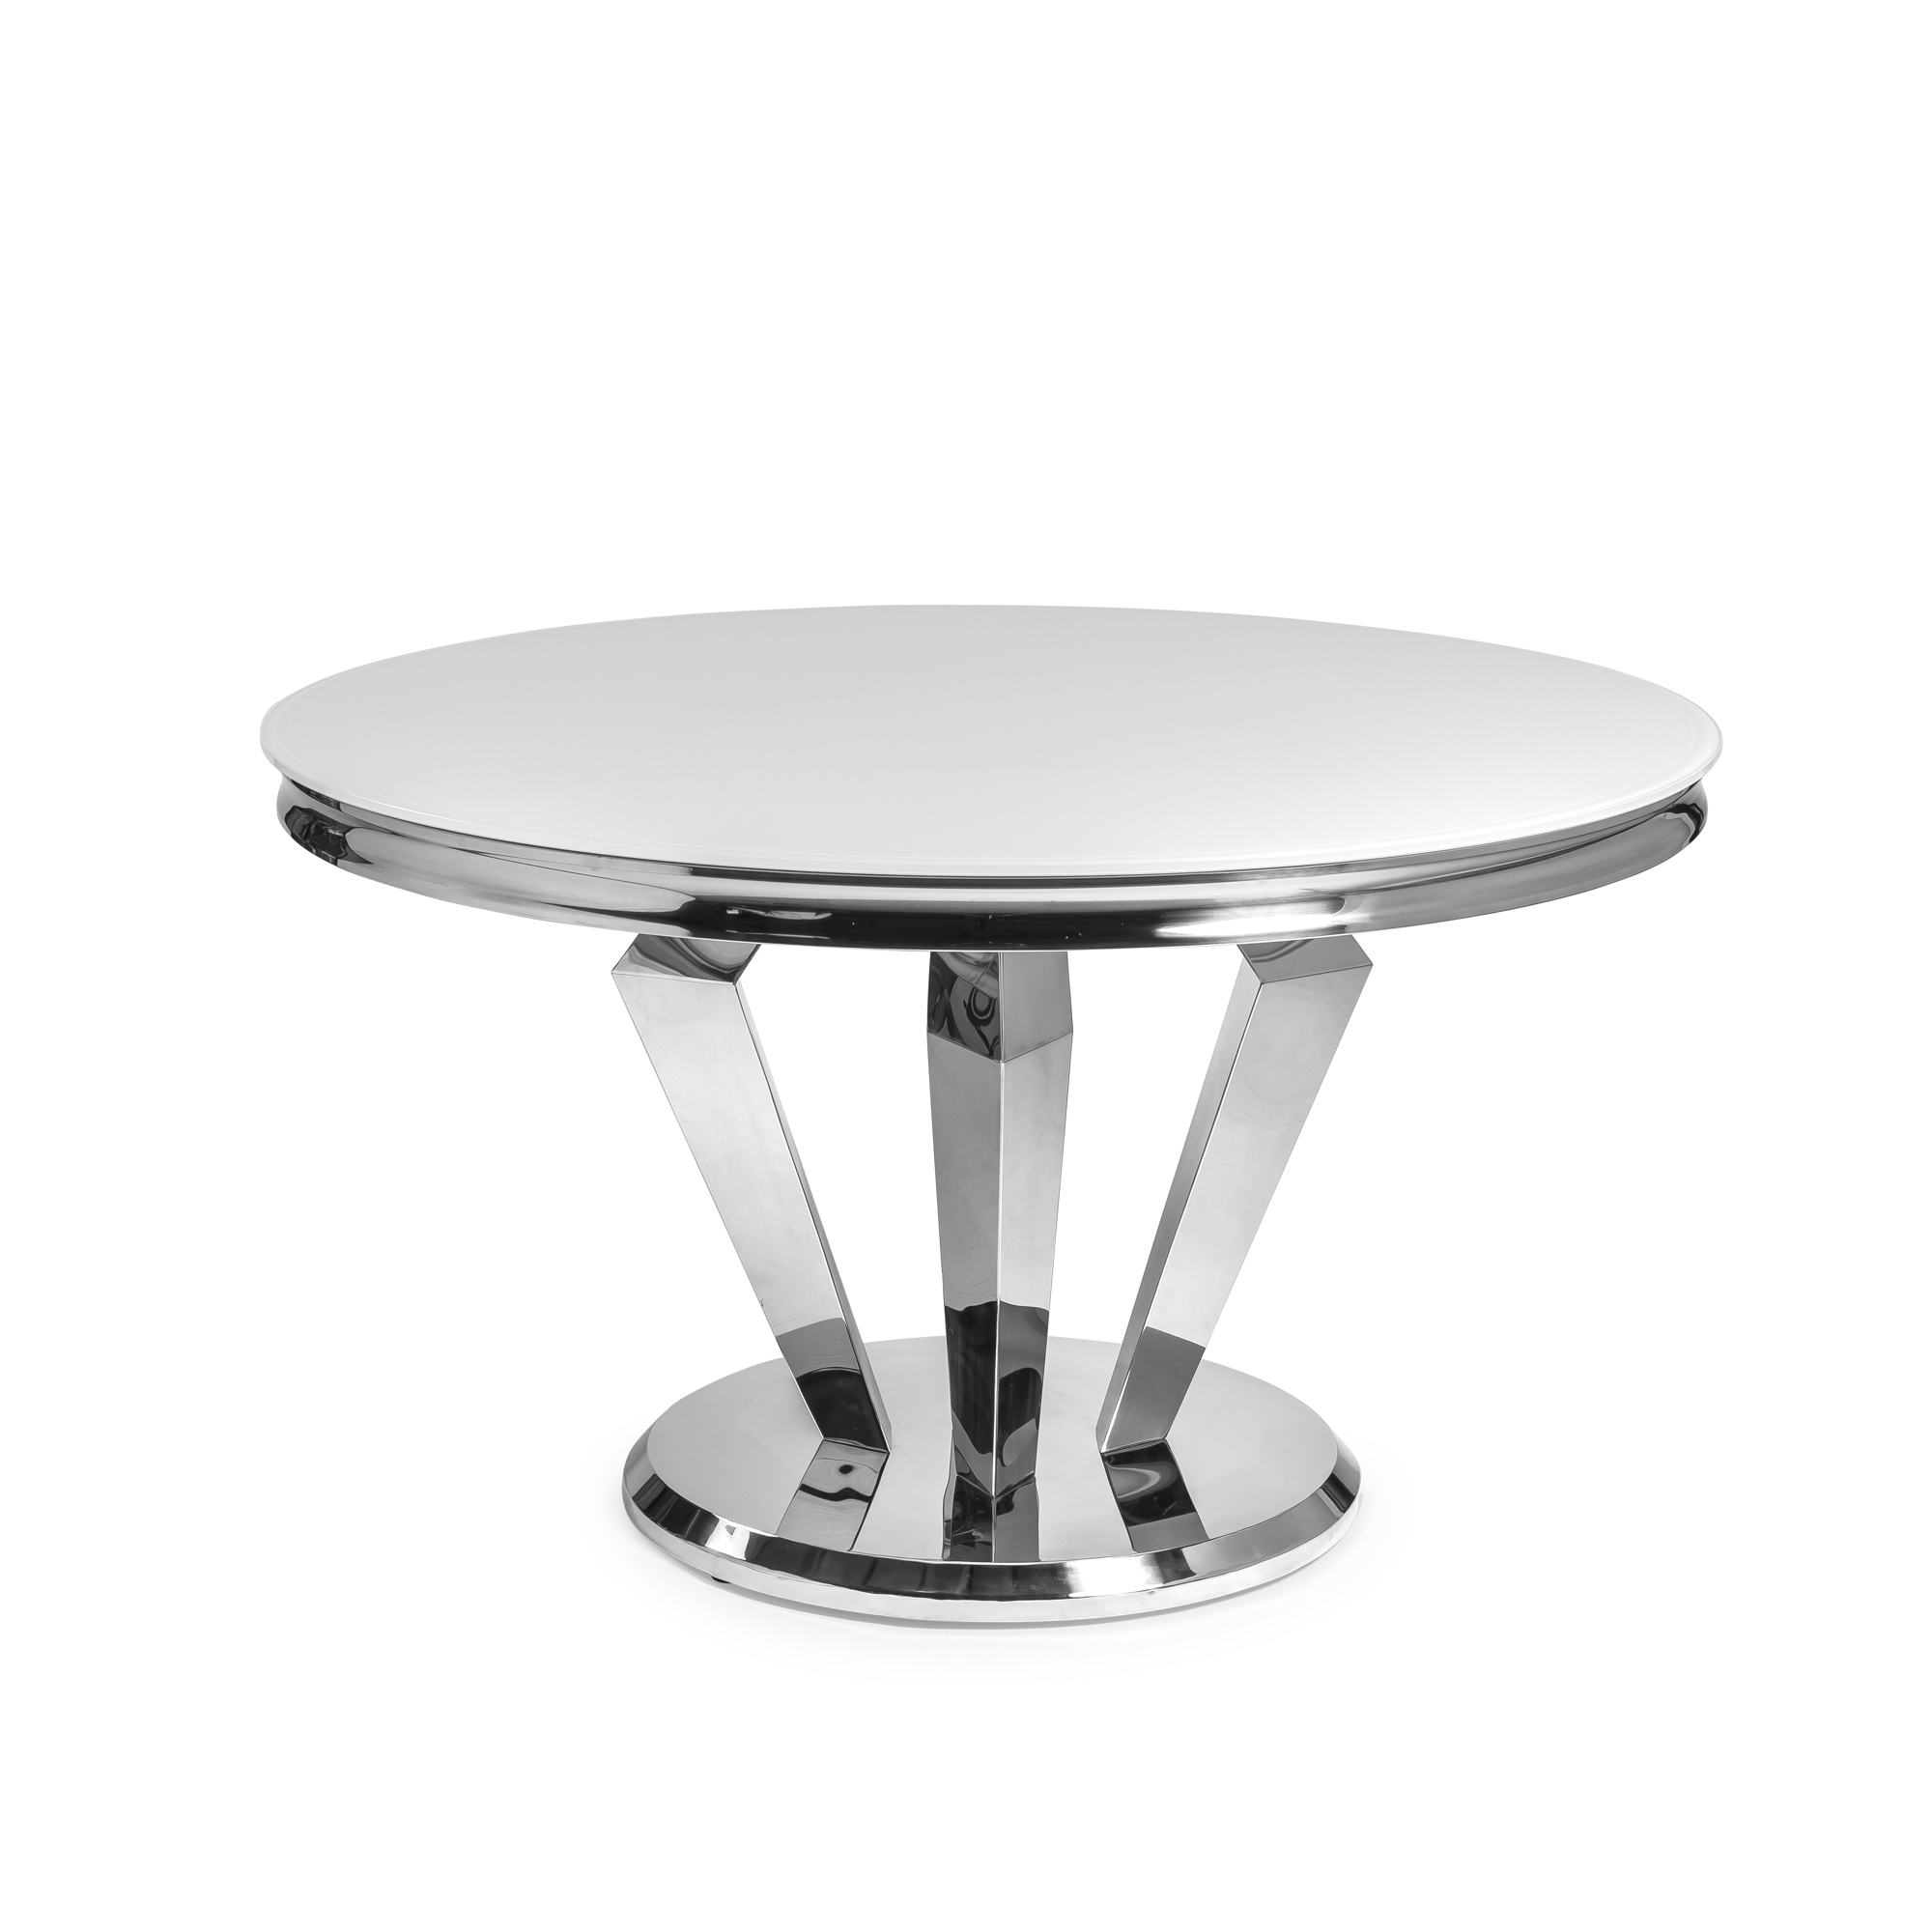 1.3m Circular White Glass Top Dining Table With Stainless Steel Legs